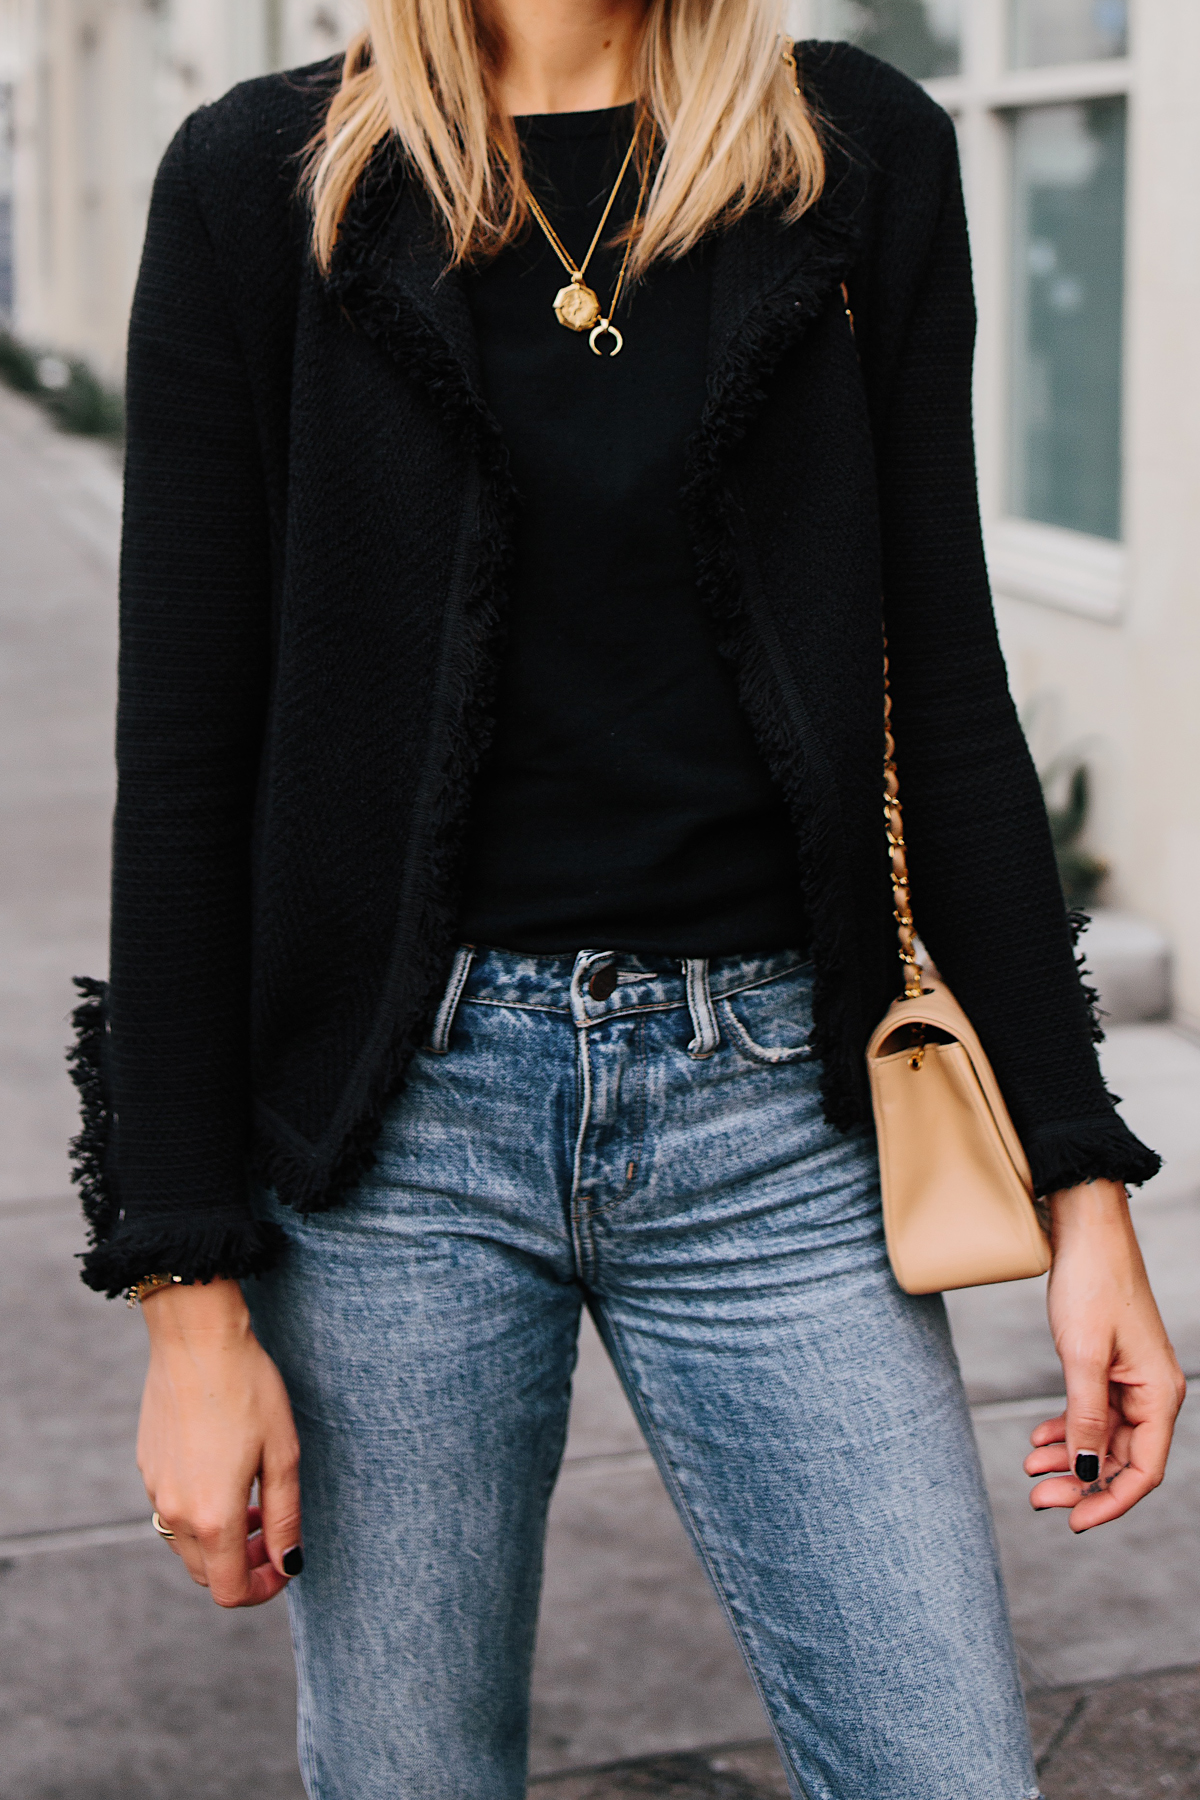 Woman Wearing Black Tweed Jacket Jeans Outfit Fashion Jackson San Diego Fashion Blogger Street Style